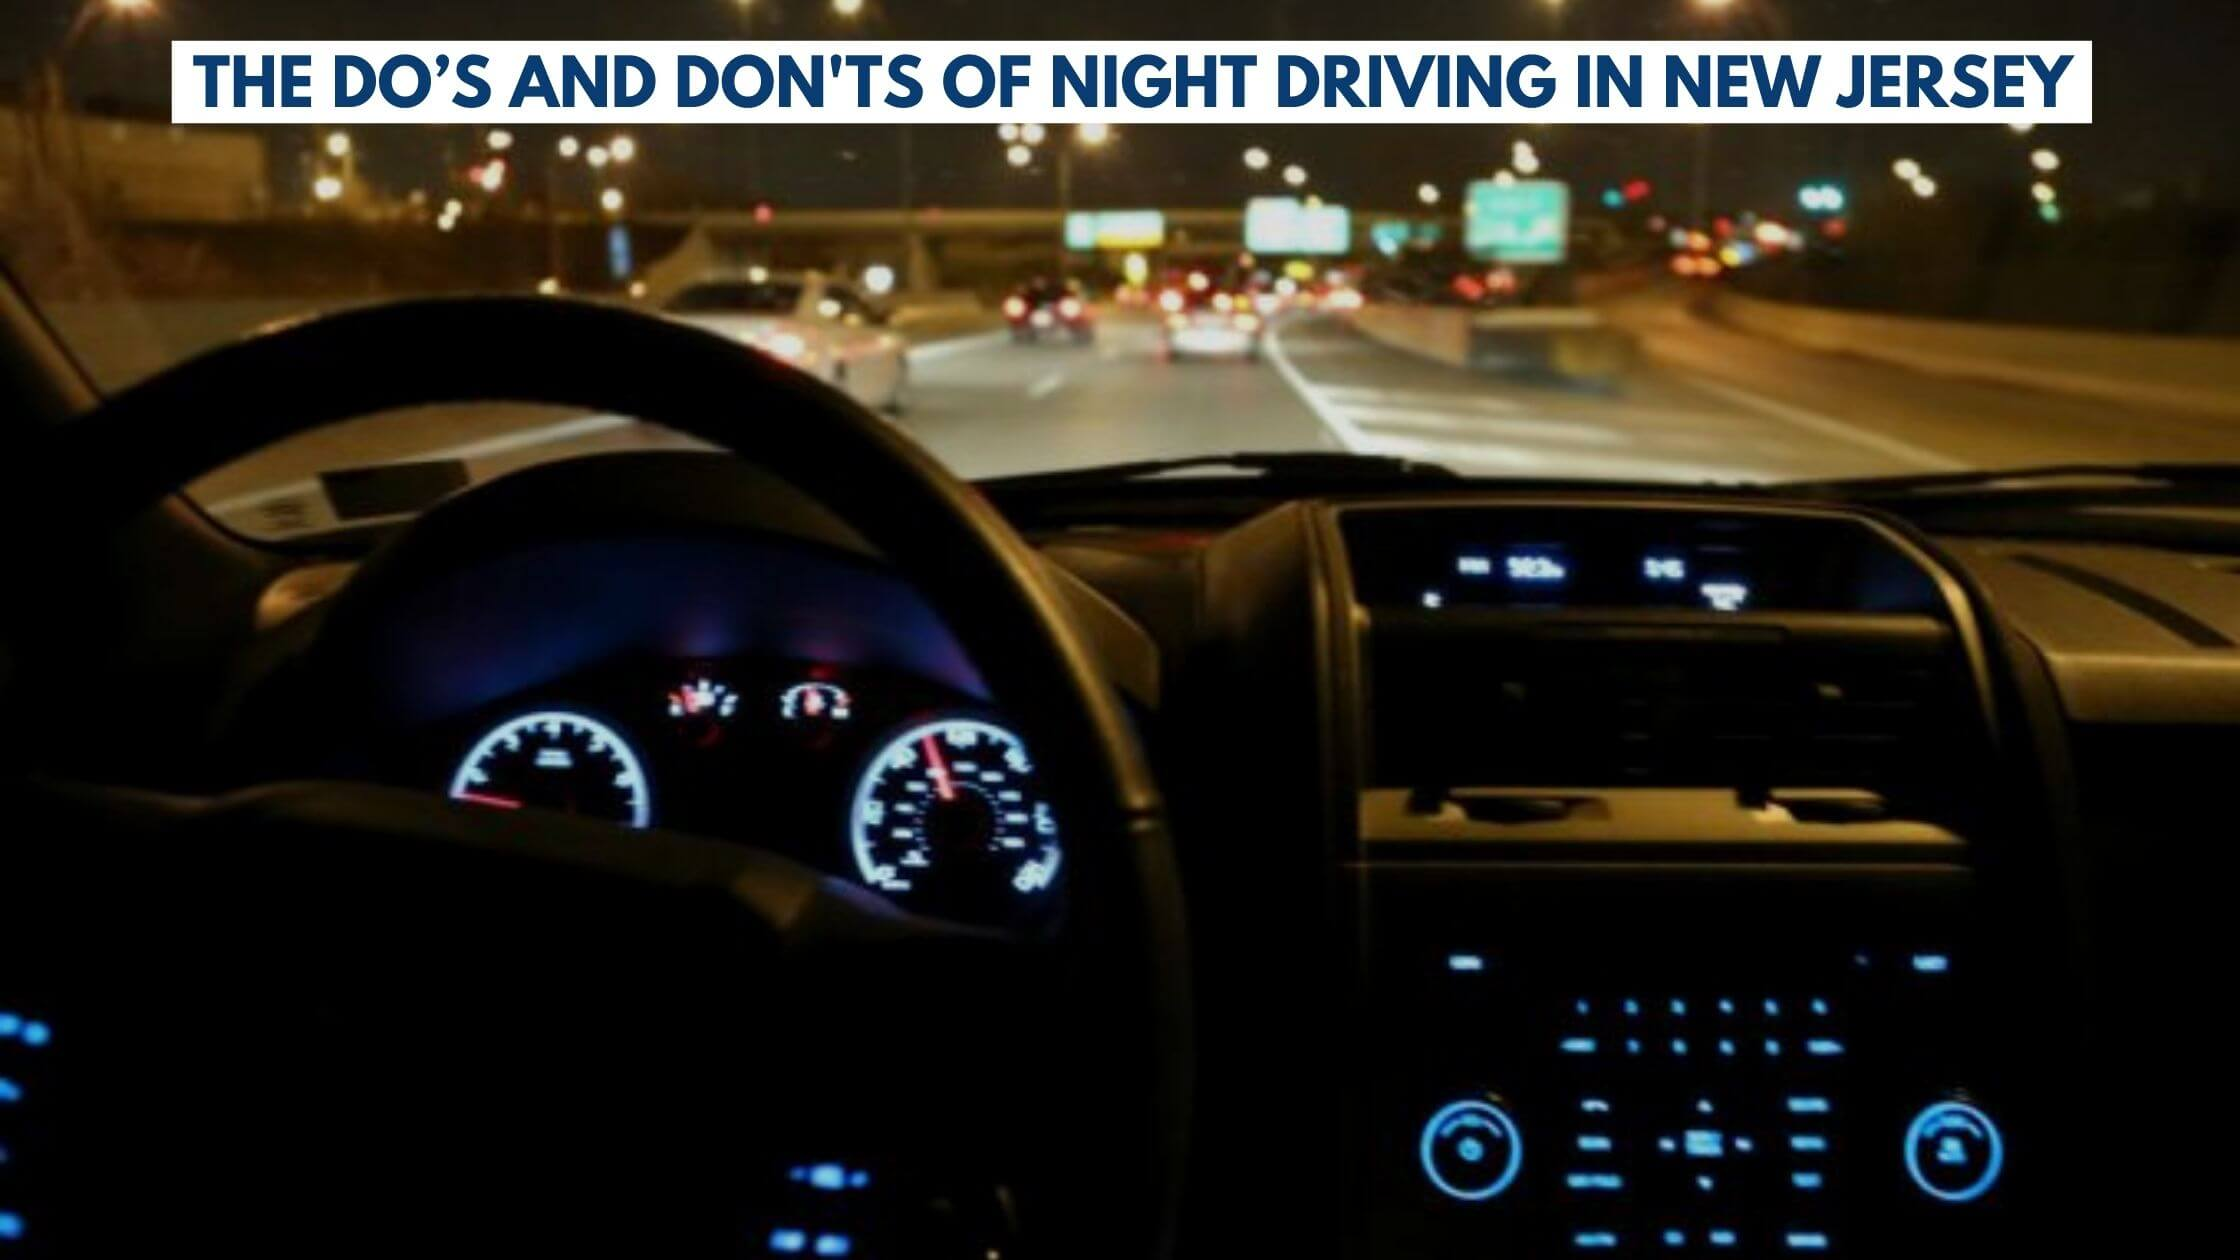 Night Driving In New Jersey